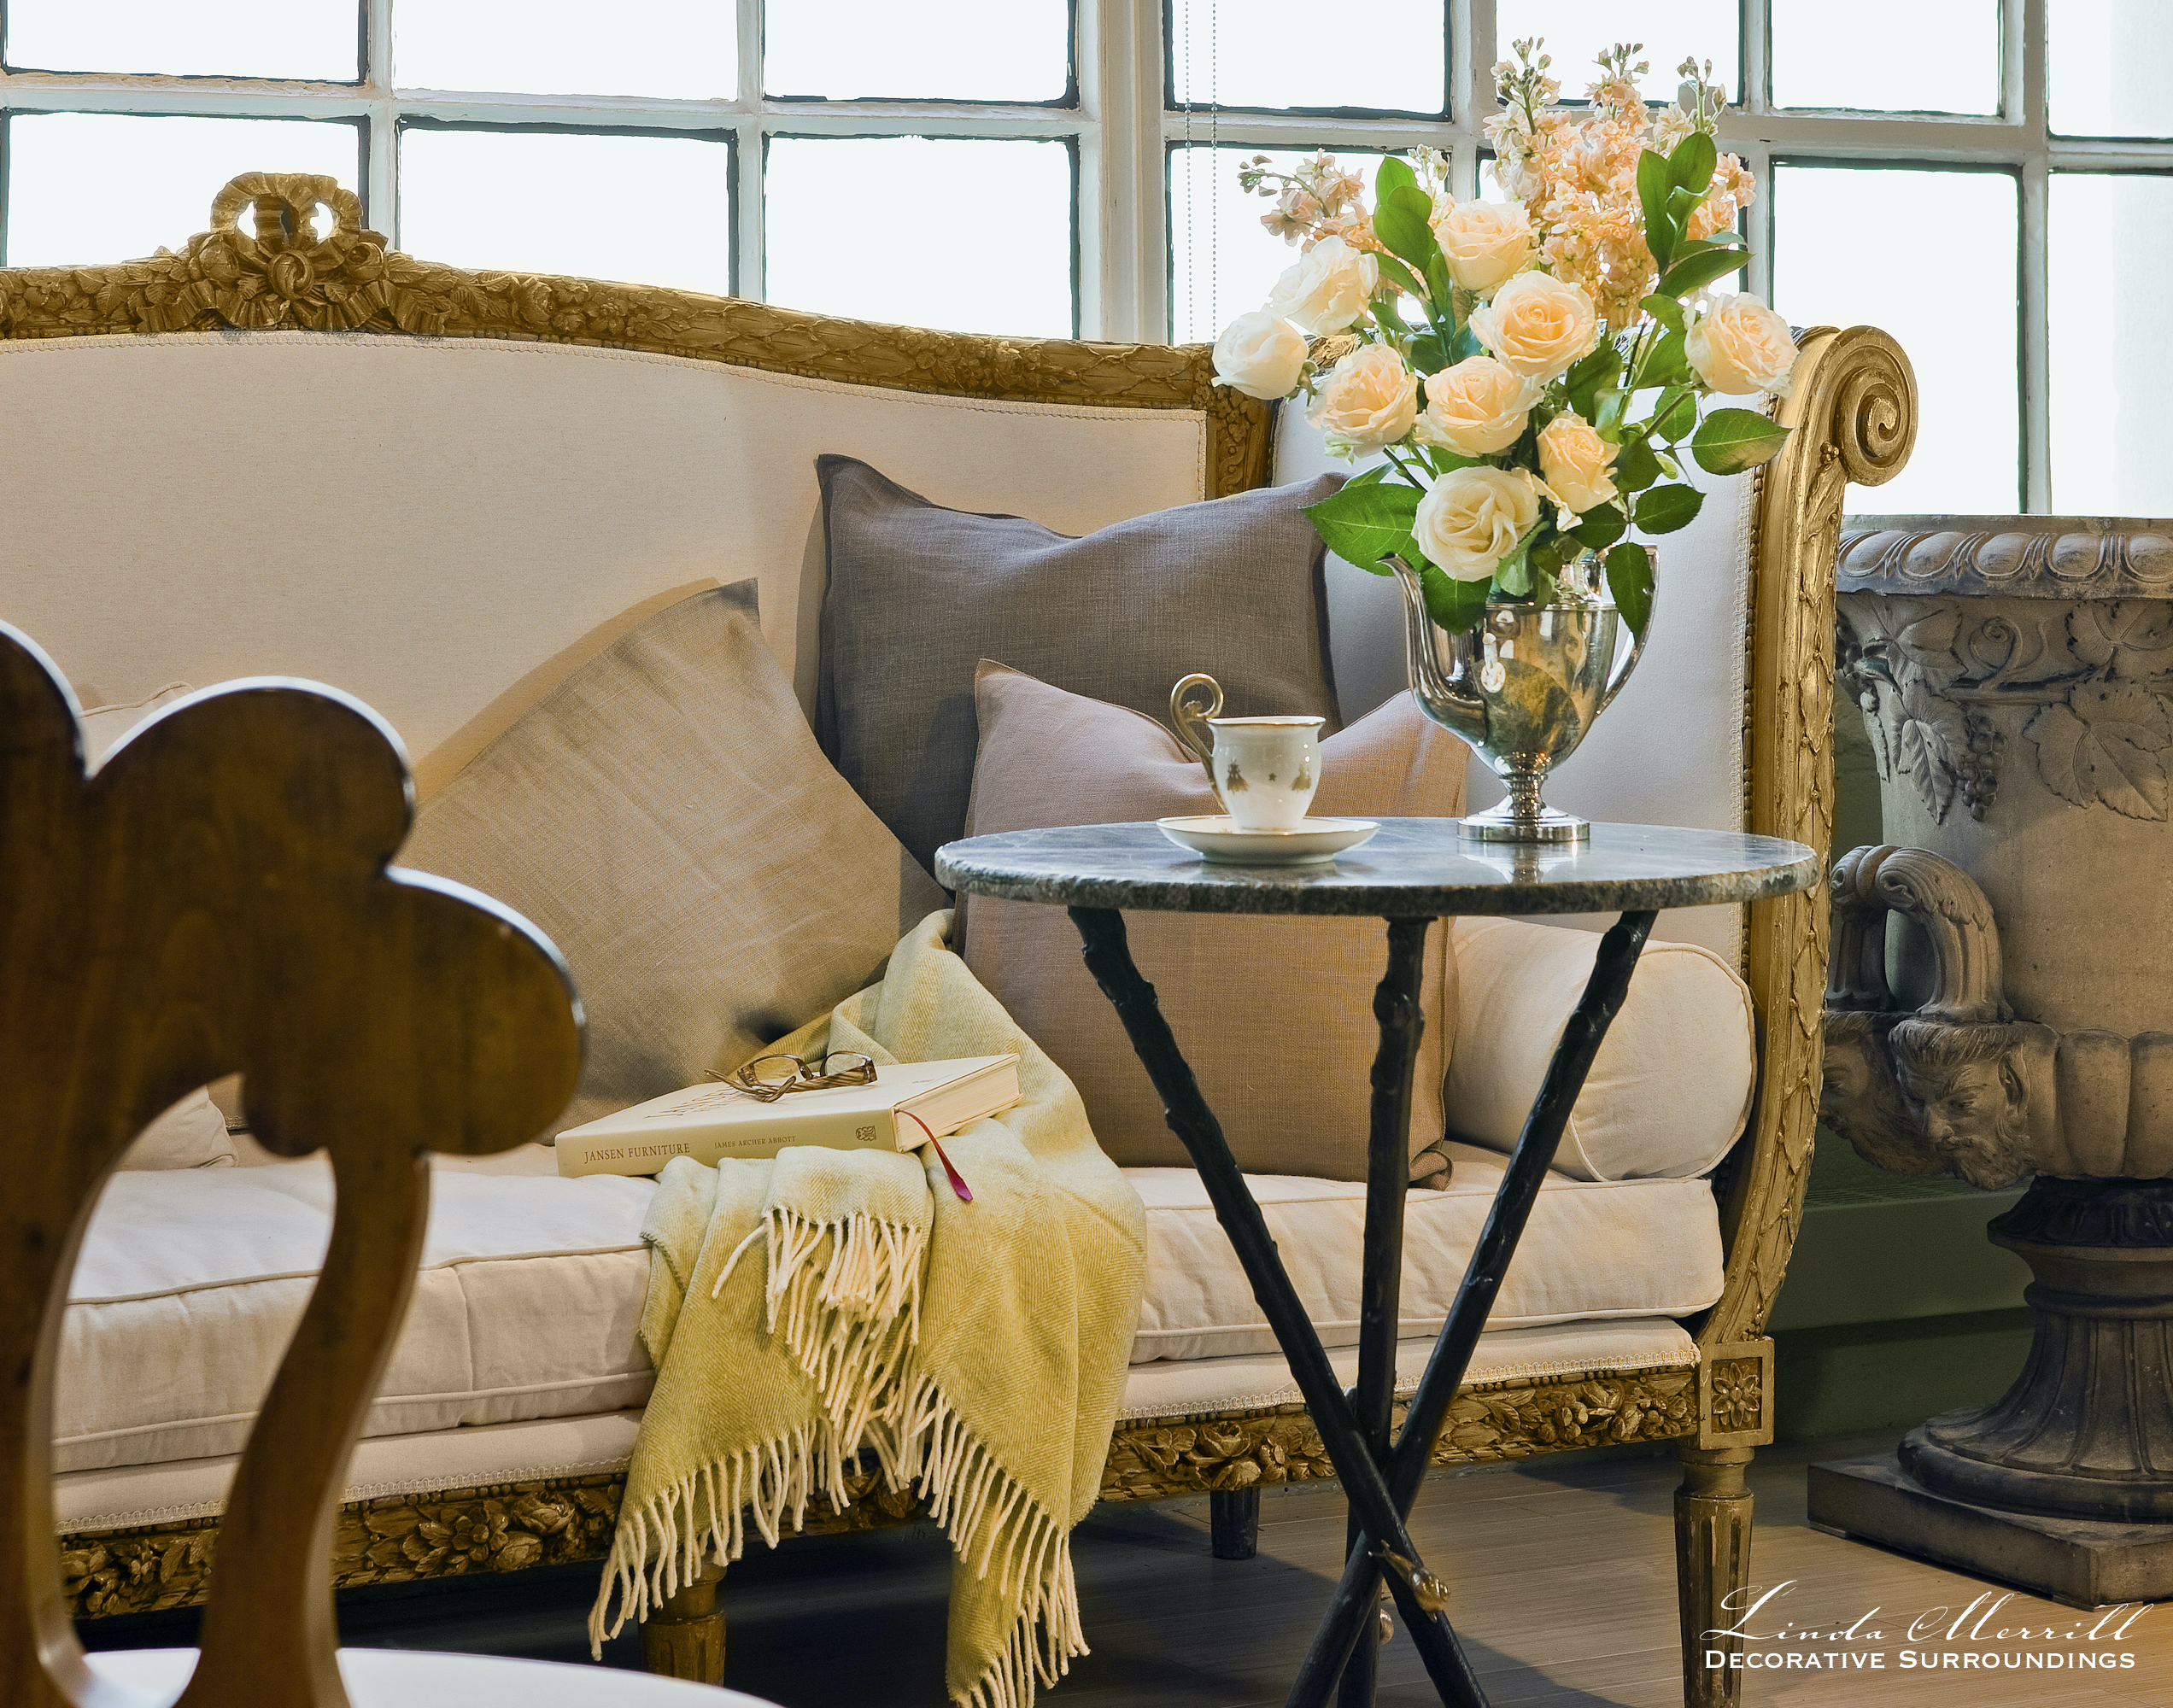 Trianon Antiques Linda Merrill Decorative Surroundings Styled Antiques Glossary